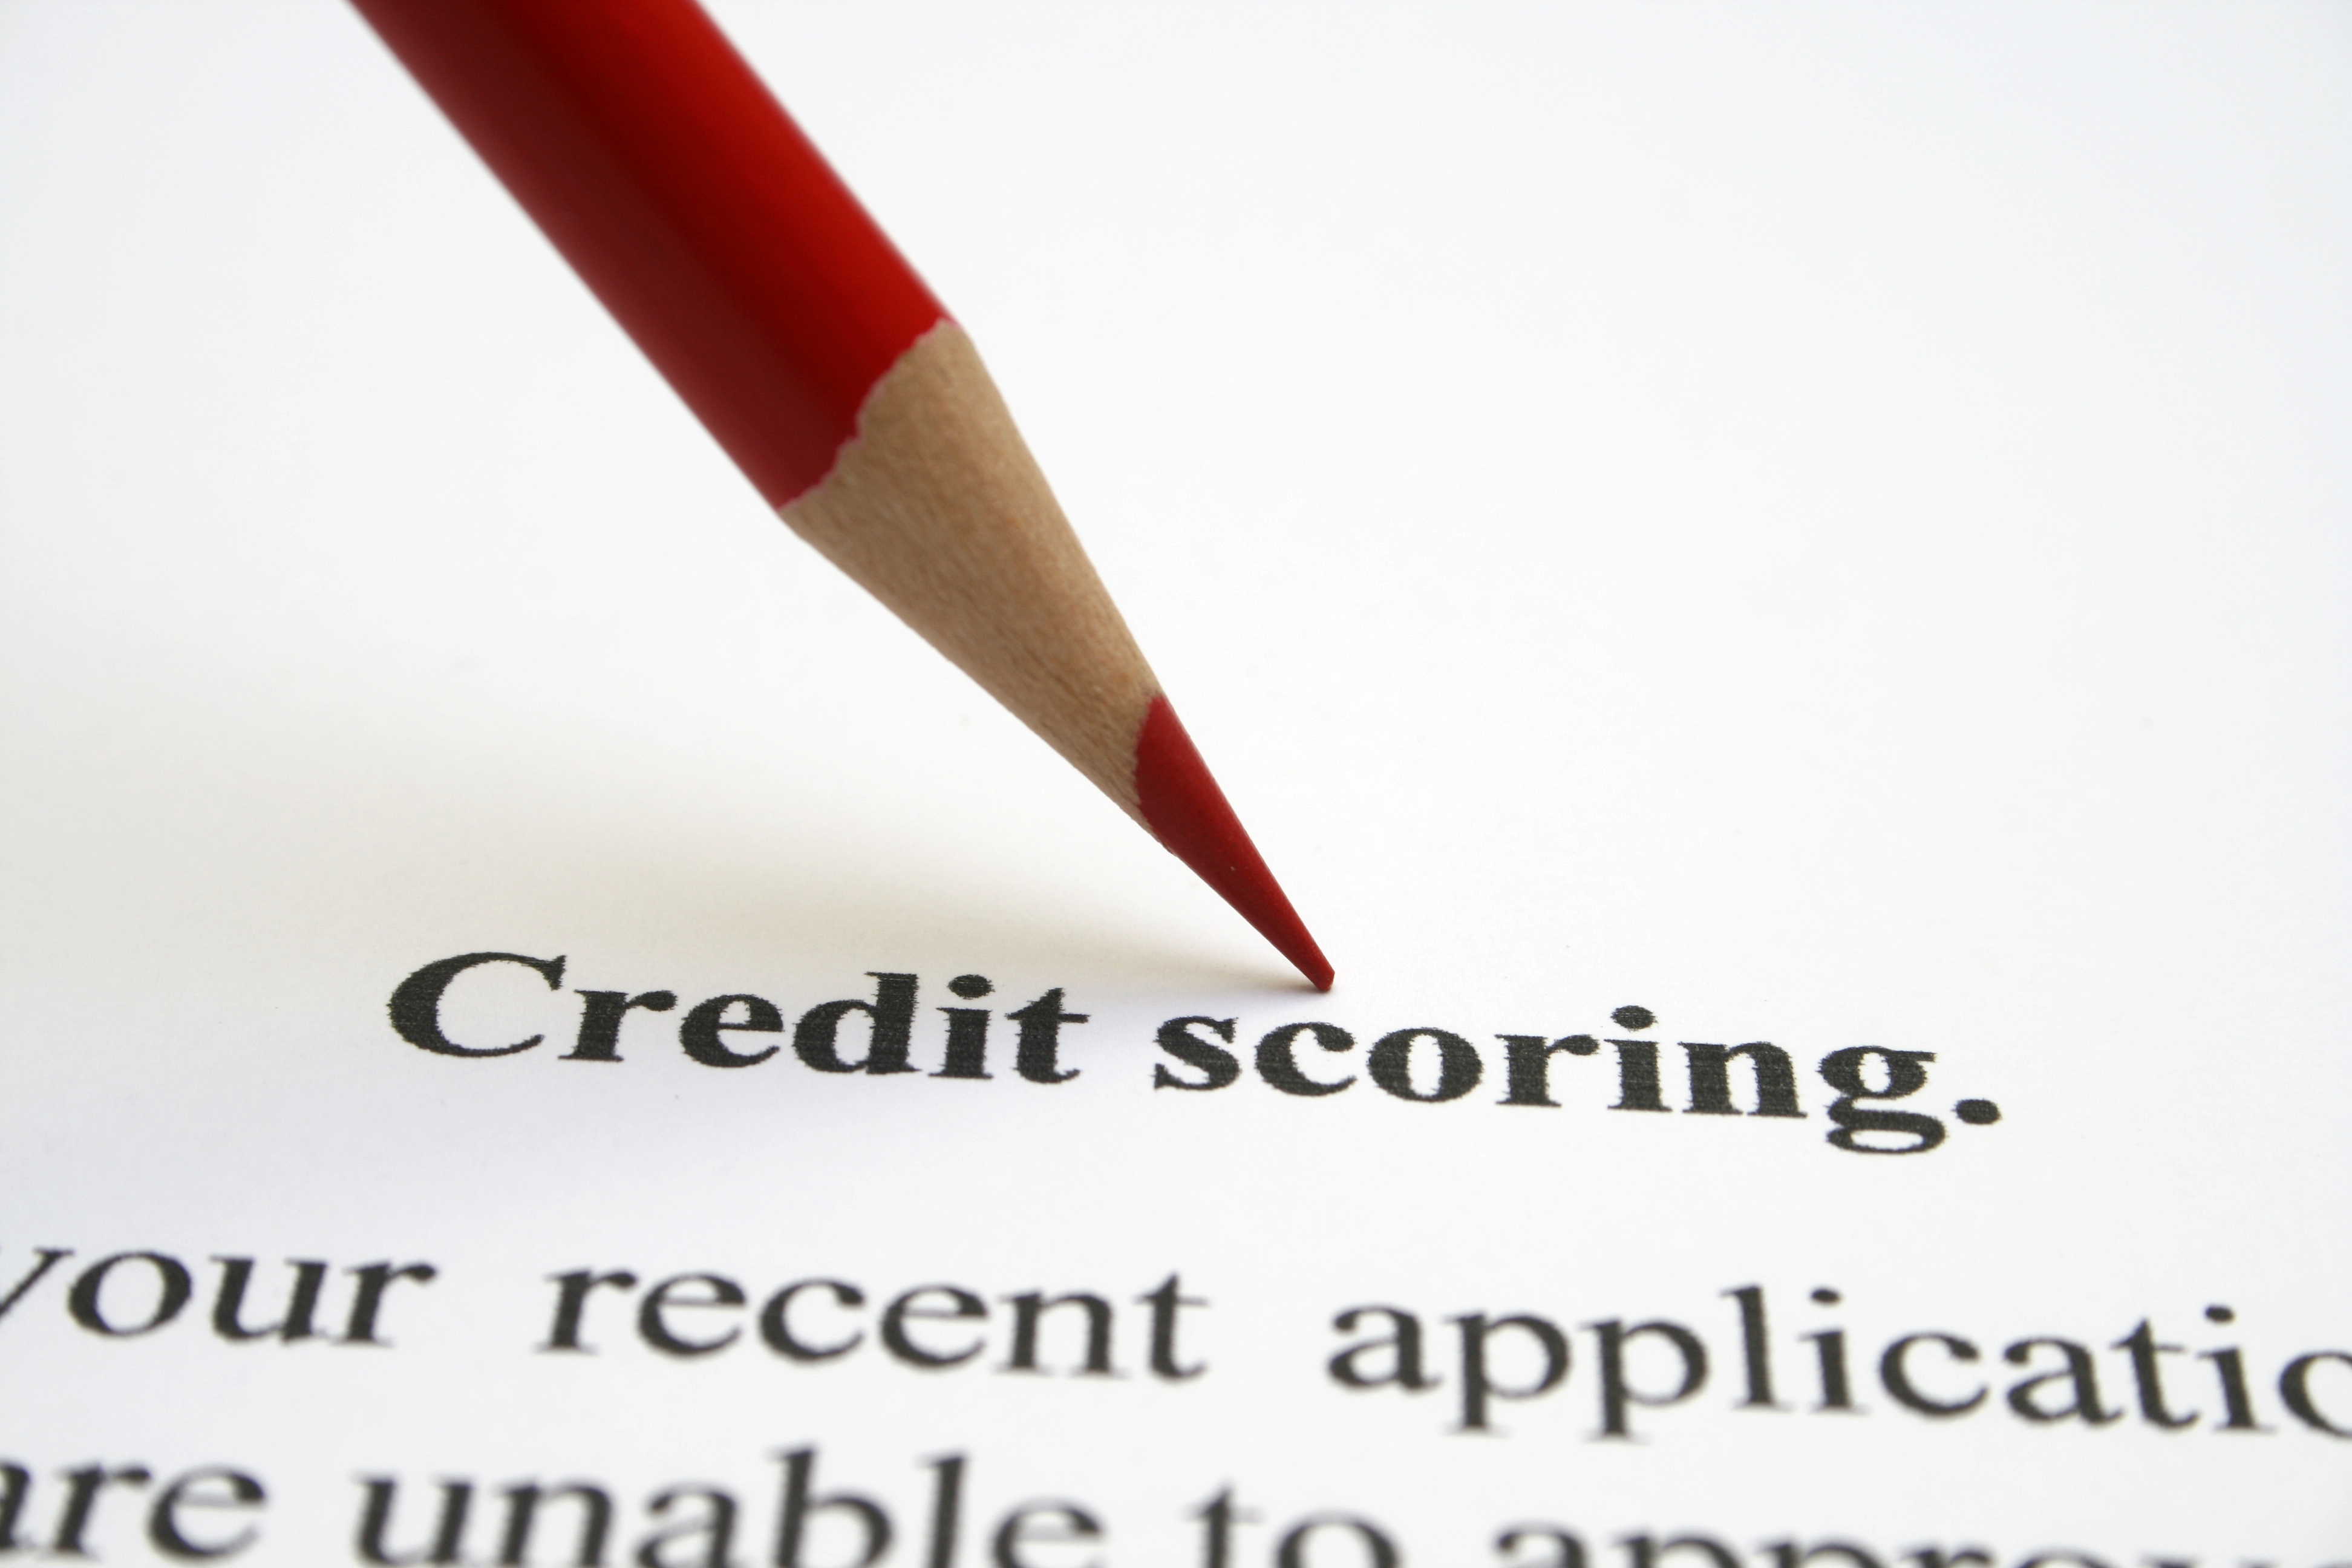 Credit scoring text in bold on a piece of paper